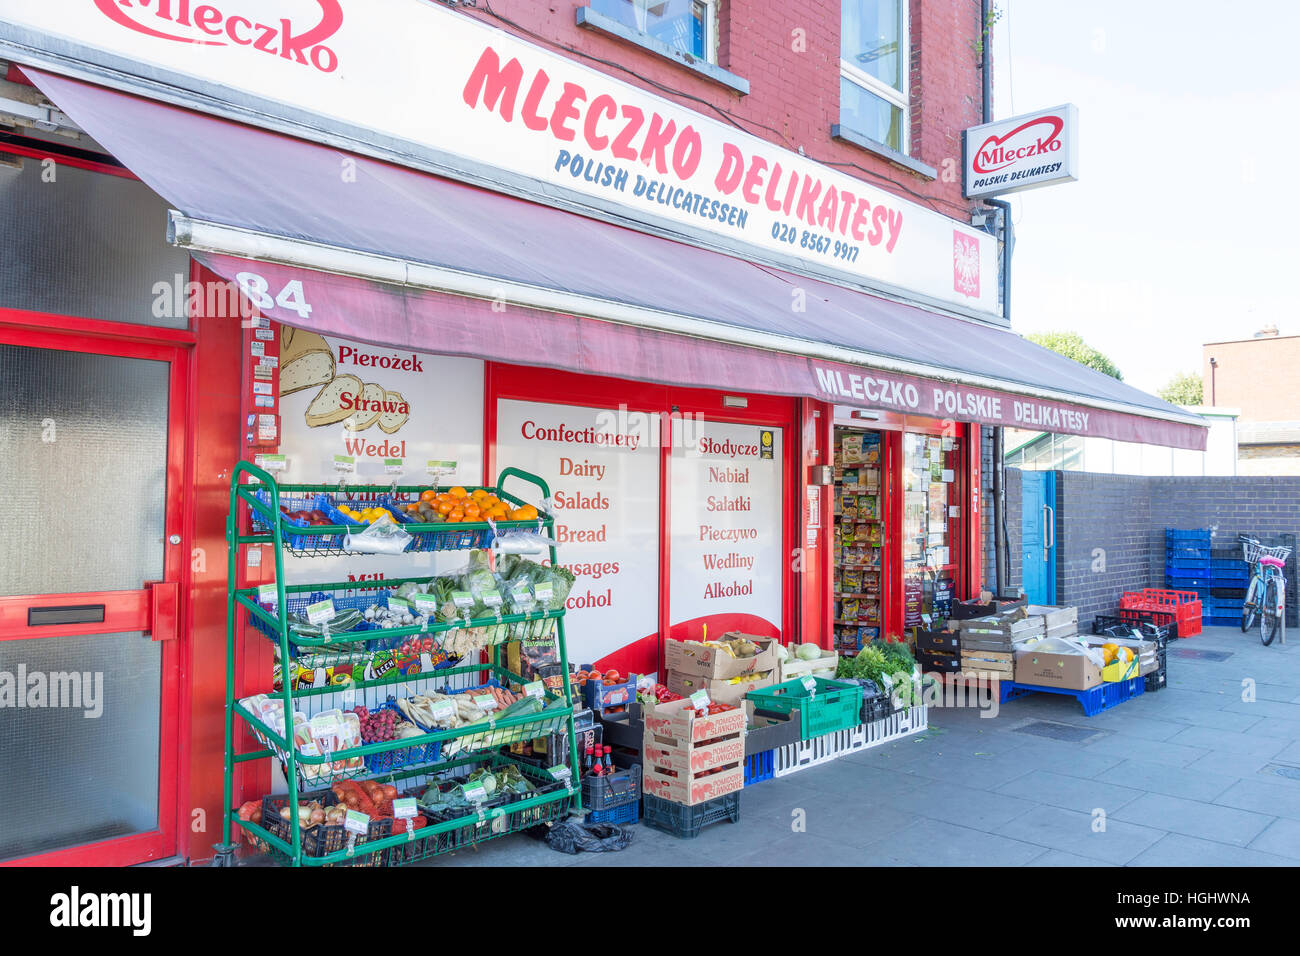 Mleczko Polish Delicatessen, South Ealing Road, Ealing, London Borough of Ealing, Greater London, England, United - Stock Image